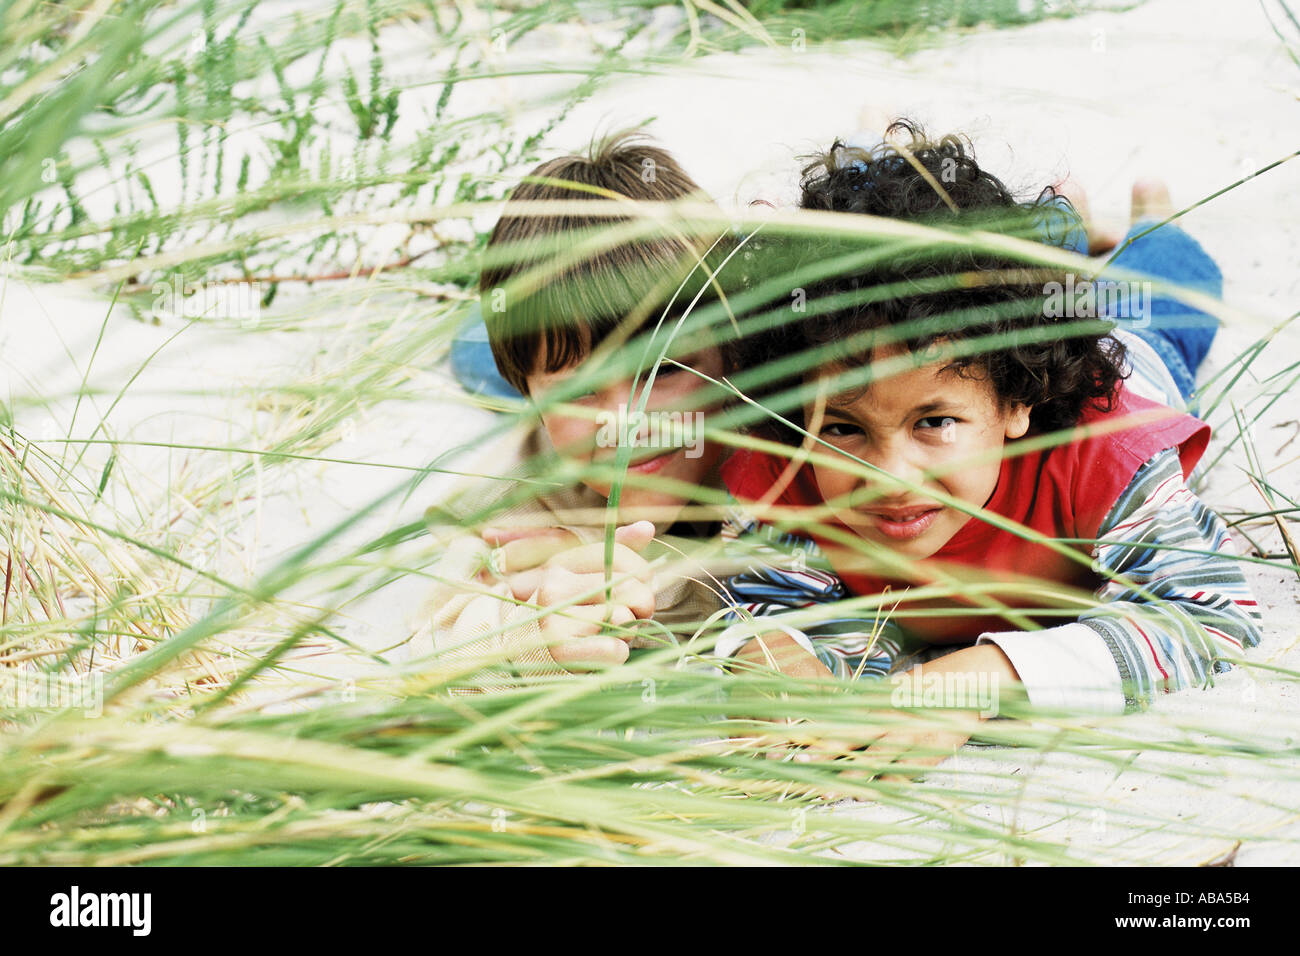 Boys playing hide-and-seek - Stock Image